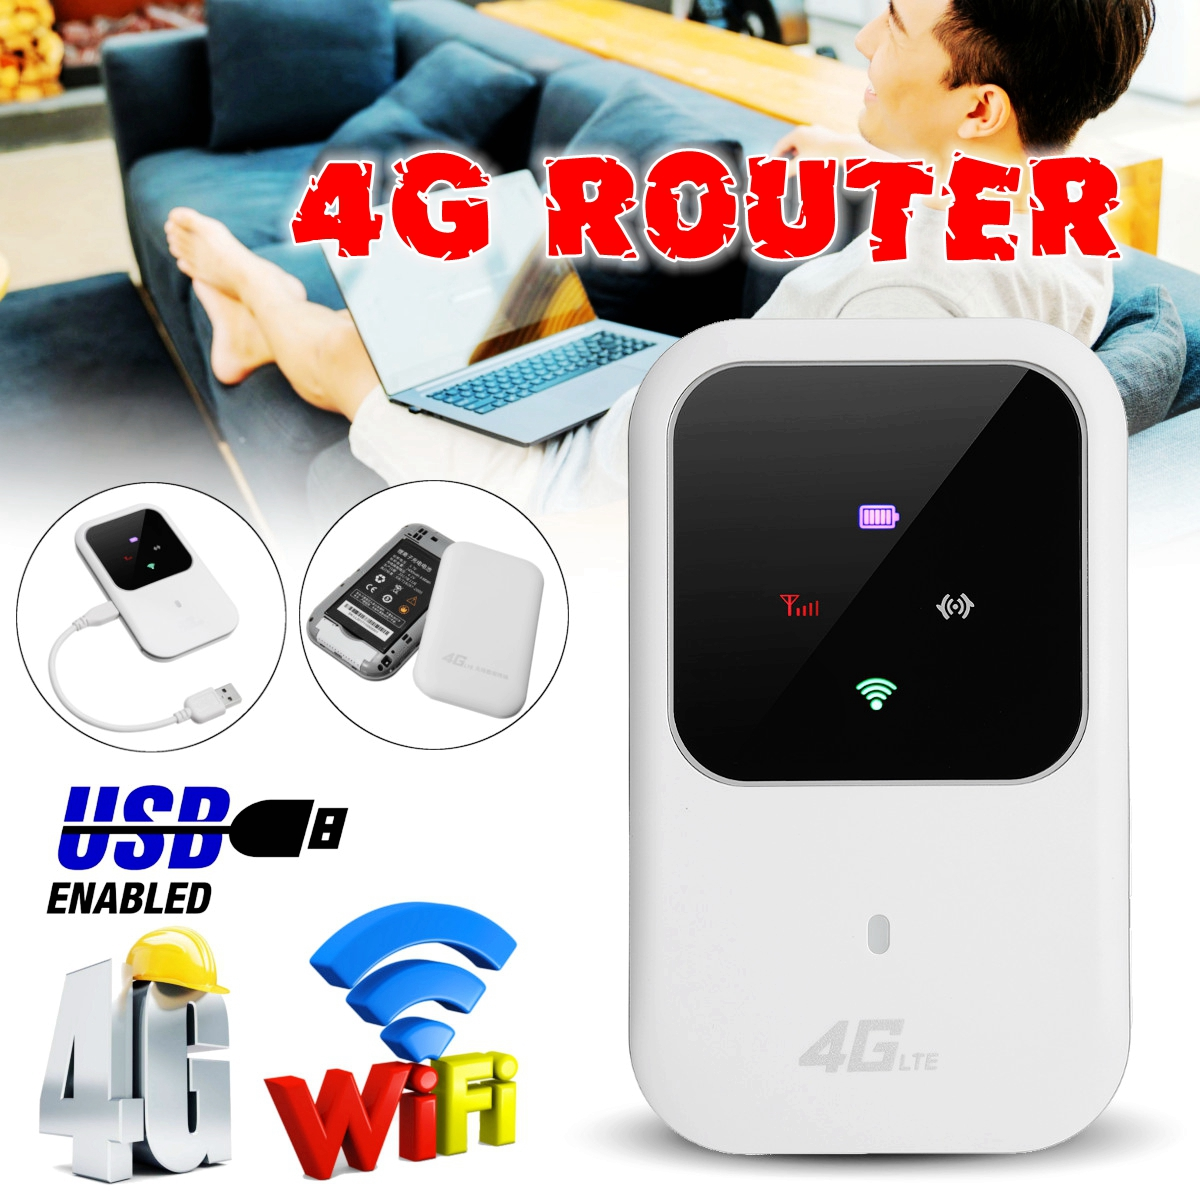 Results Of Top Usb Modem 4g Lte Wifi In Sadola Huawei Mifi E8372 150mbps Mobile Wireless Router Hotspot Led Lights Supports 10 Users Portable For Car Home Travel Camping